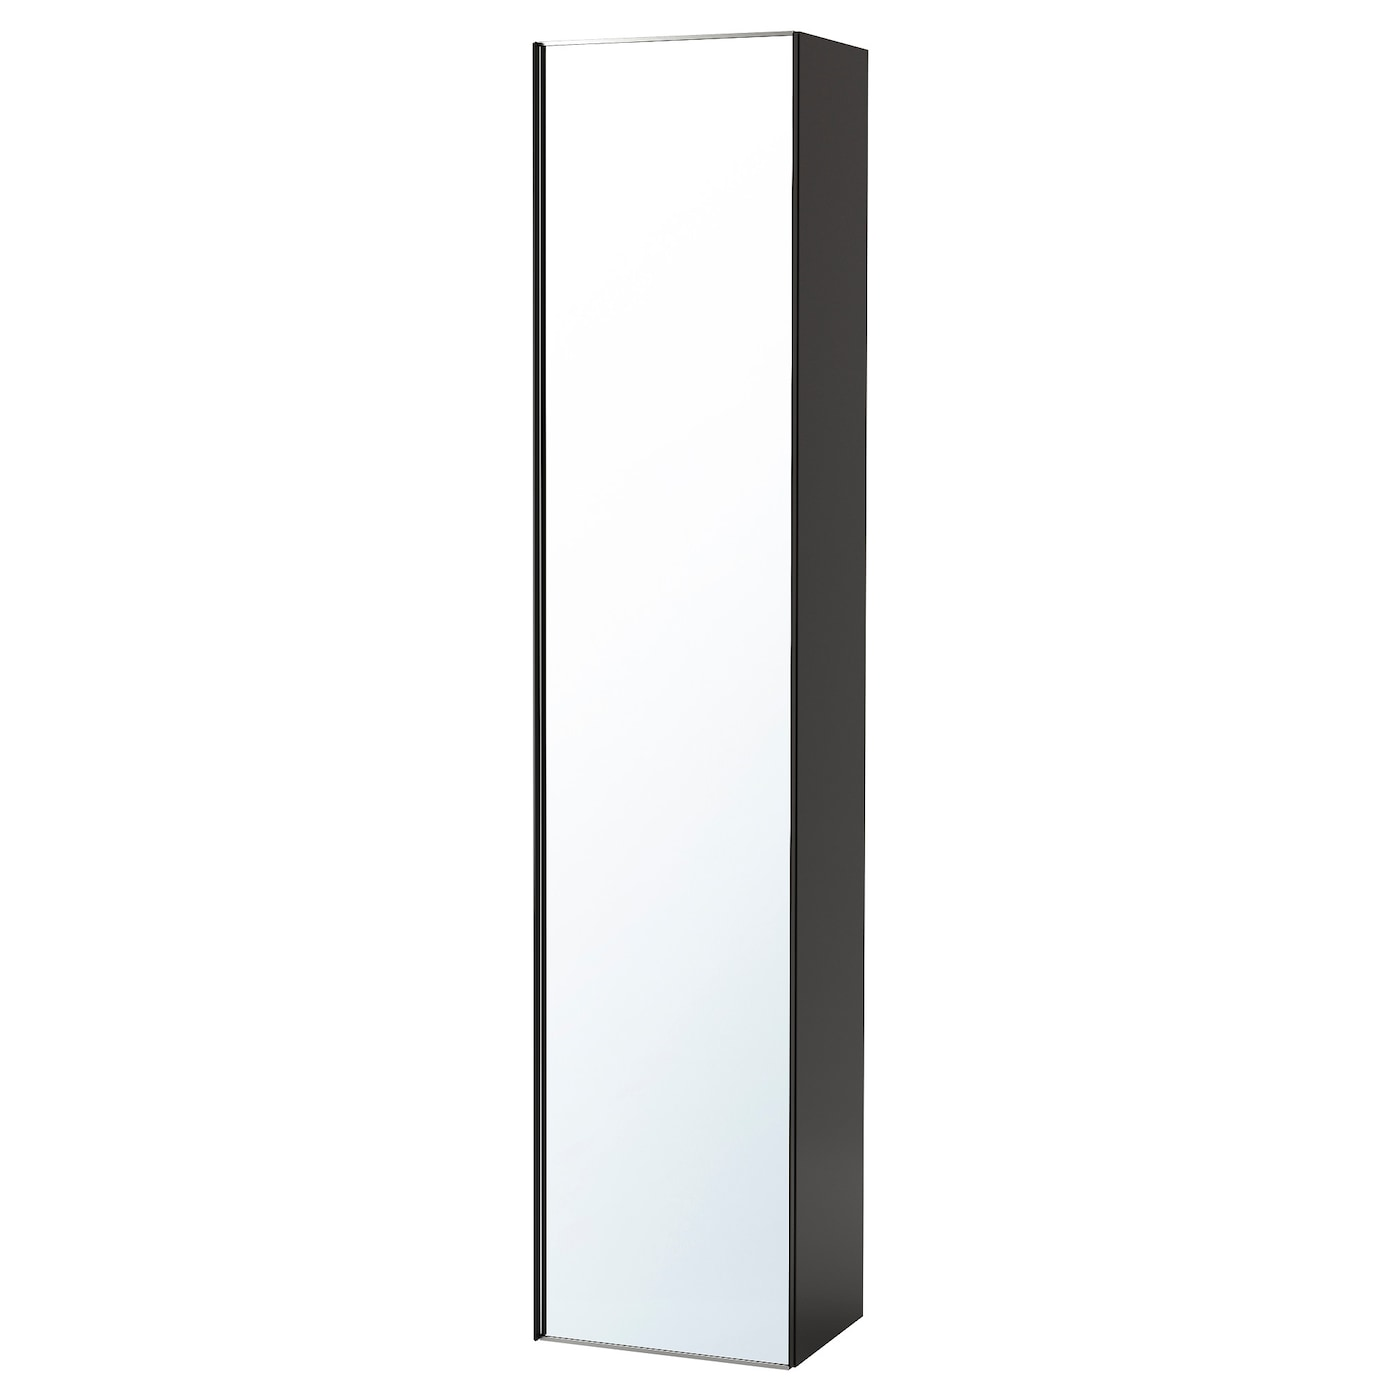 Godmorgon high cabinet with mirror door high gloss grey for Miroir grossissant mural